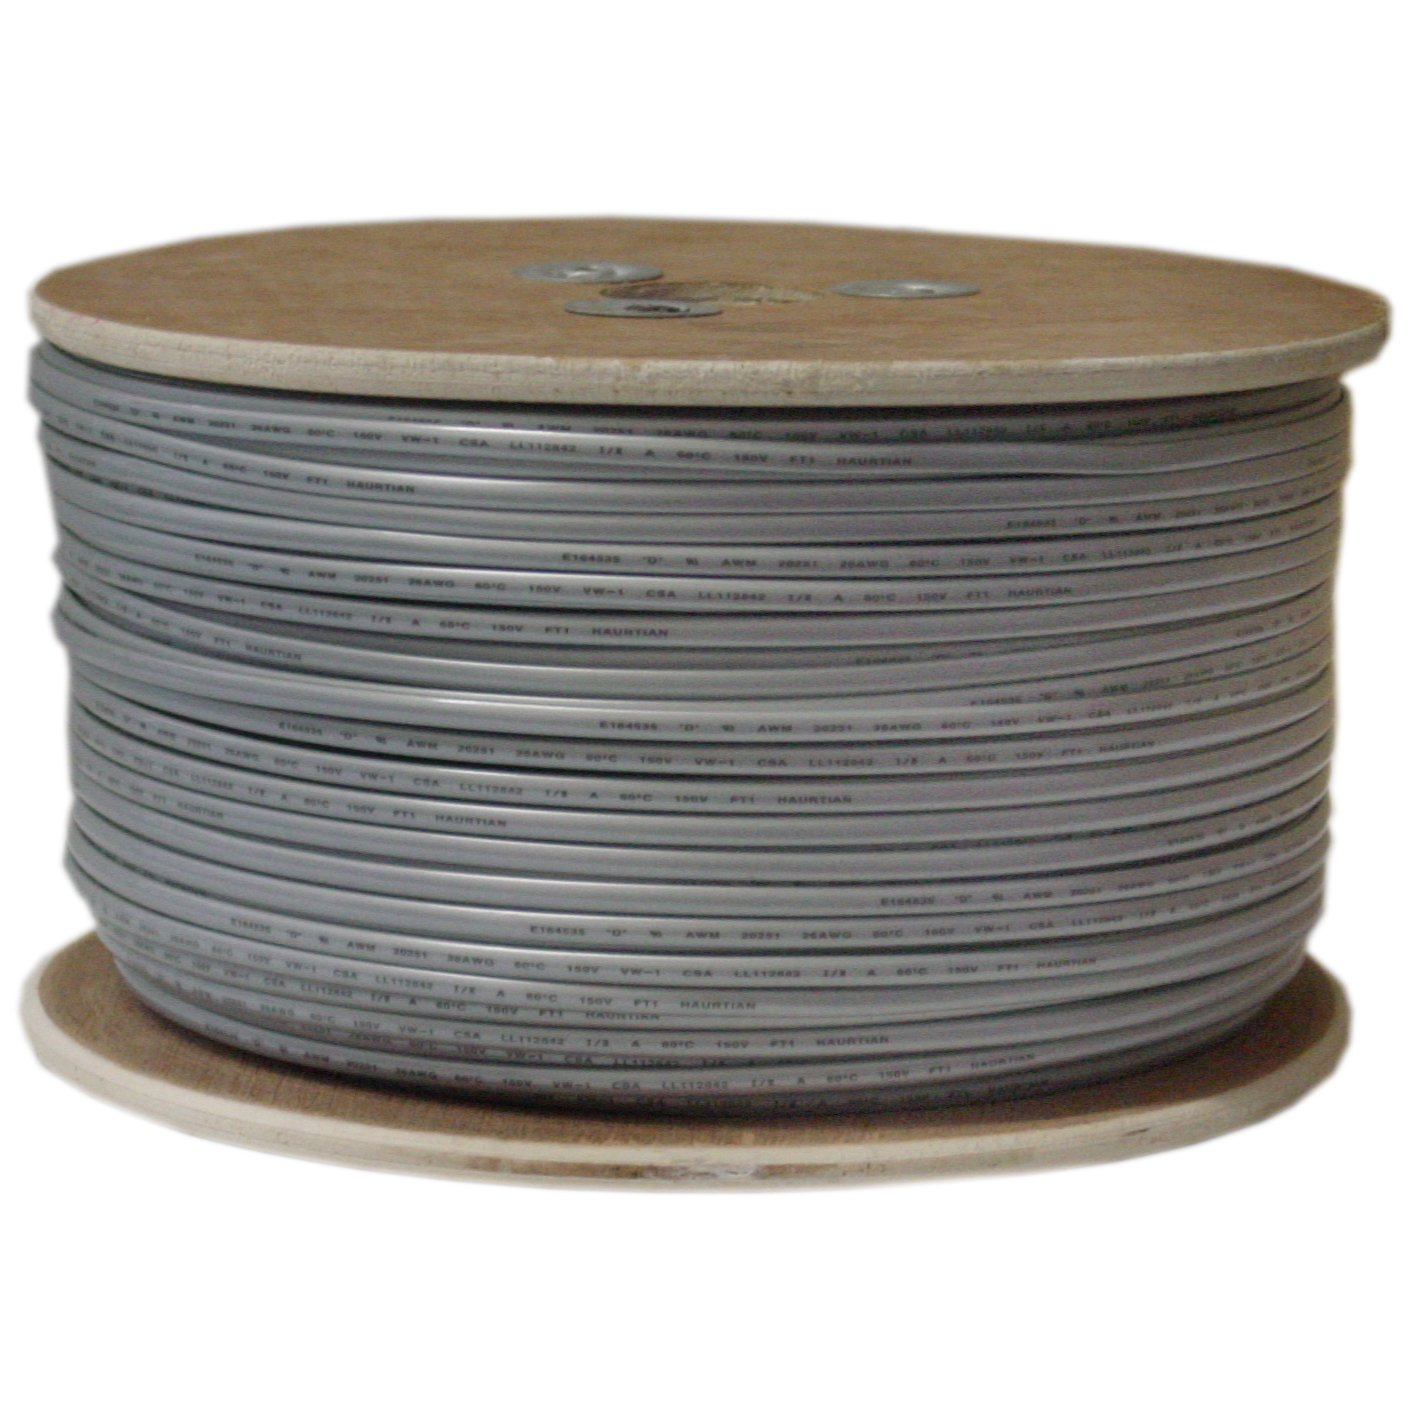 Bulk Phone Cord, Silver Satin, 26/4 (26 AWG 4 Conductor), Spool, 1000 Foot by CableWholesale